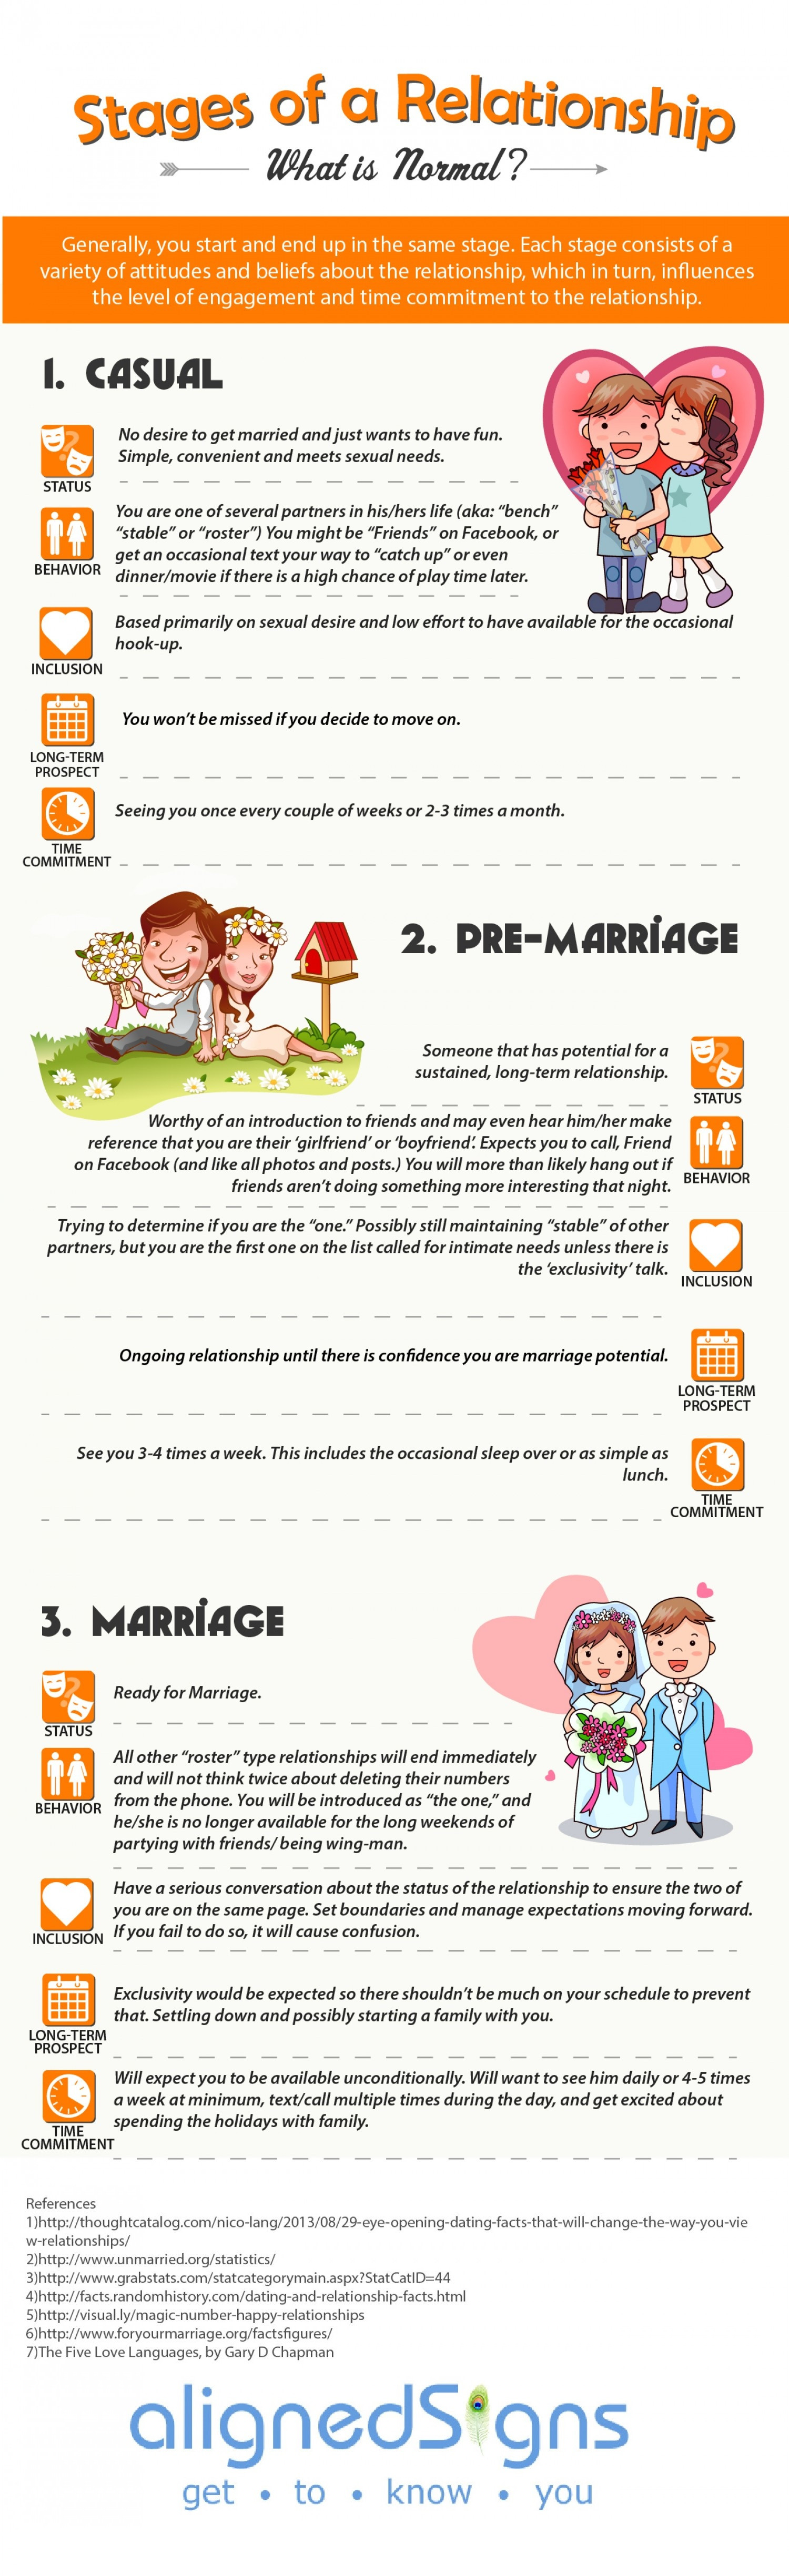 Stages of a Relationship: What is Normal? Infographic